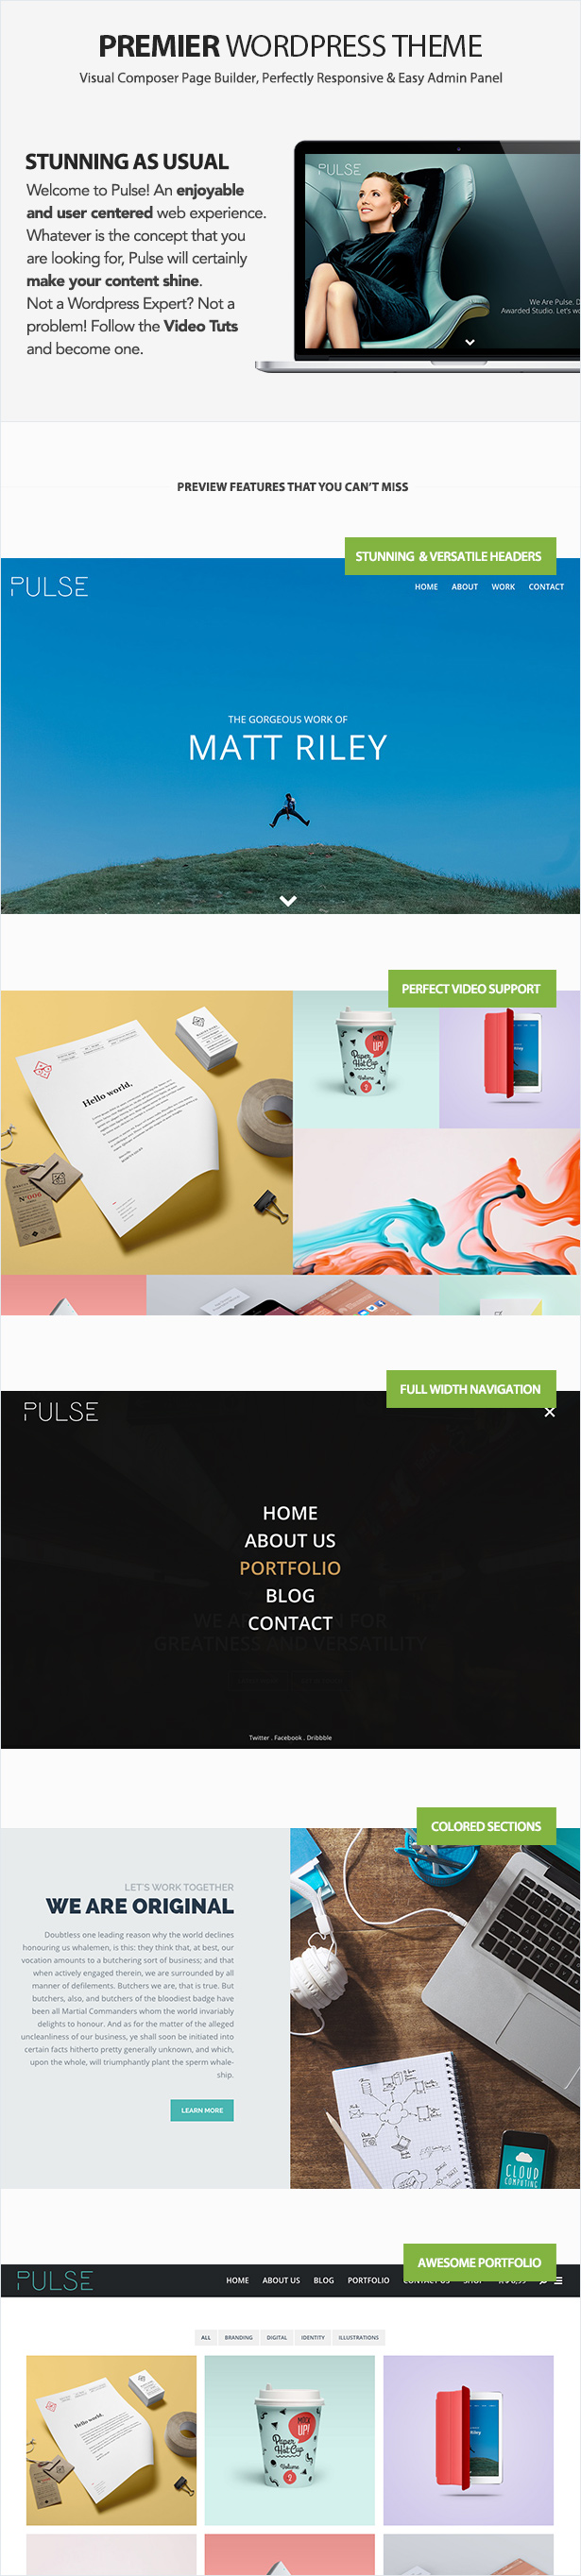 Pulse - Premier WordPress Theme